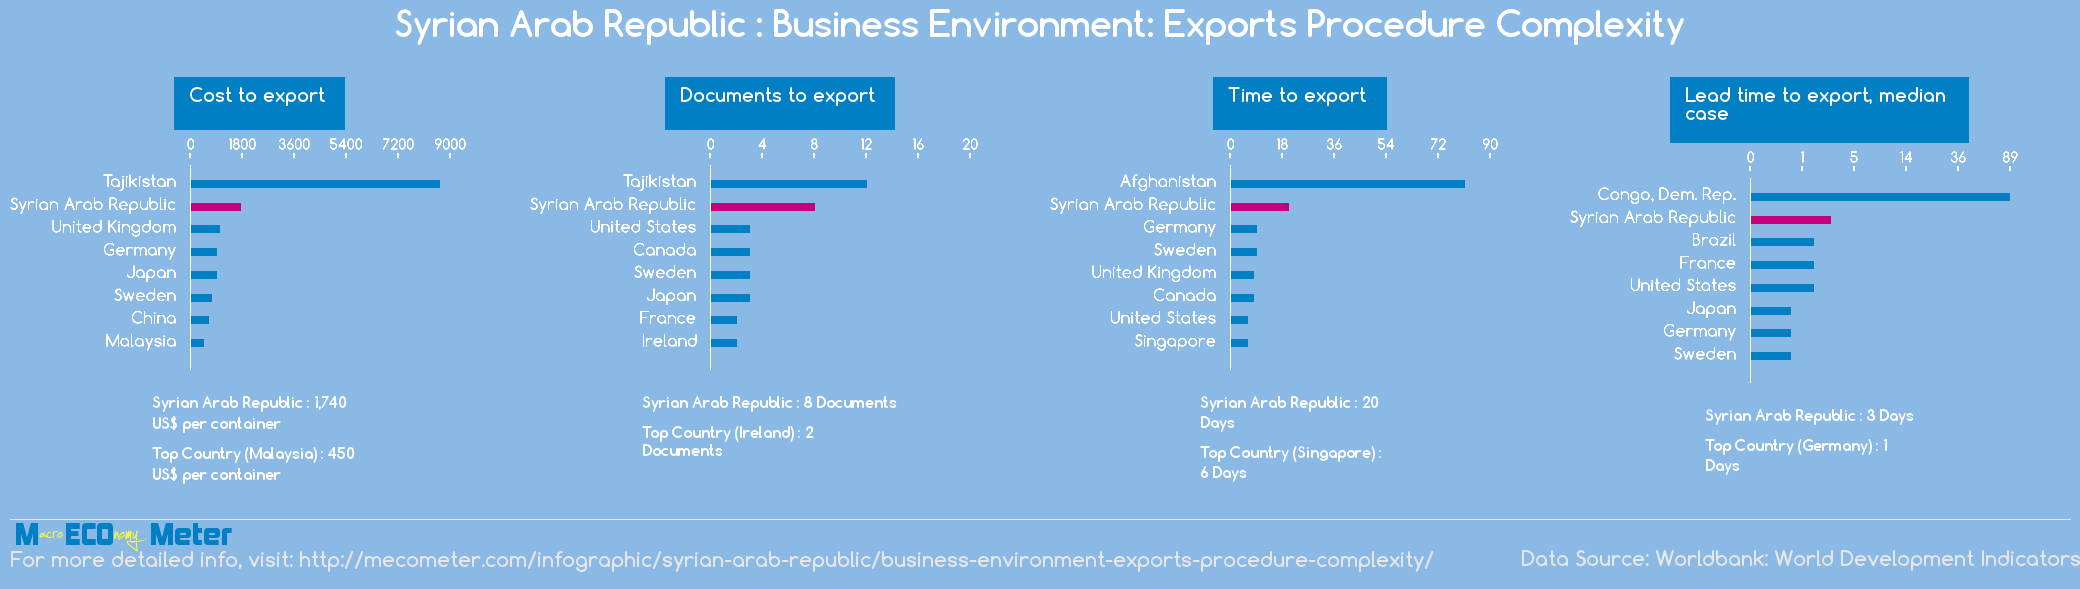 Syrian Arab Republic : Business Environment: Exports Procedure Complexity